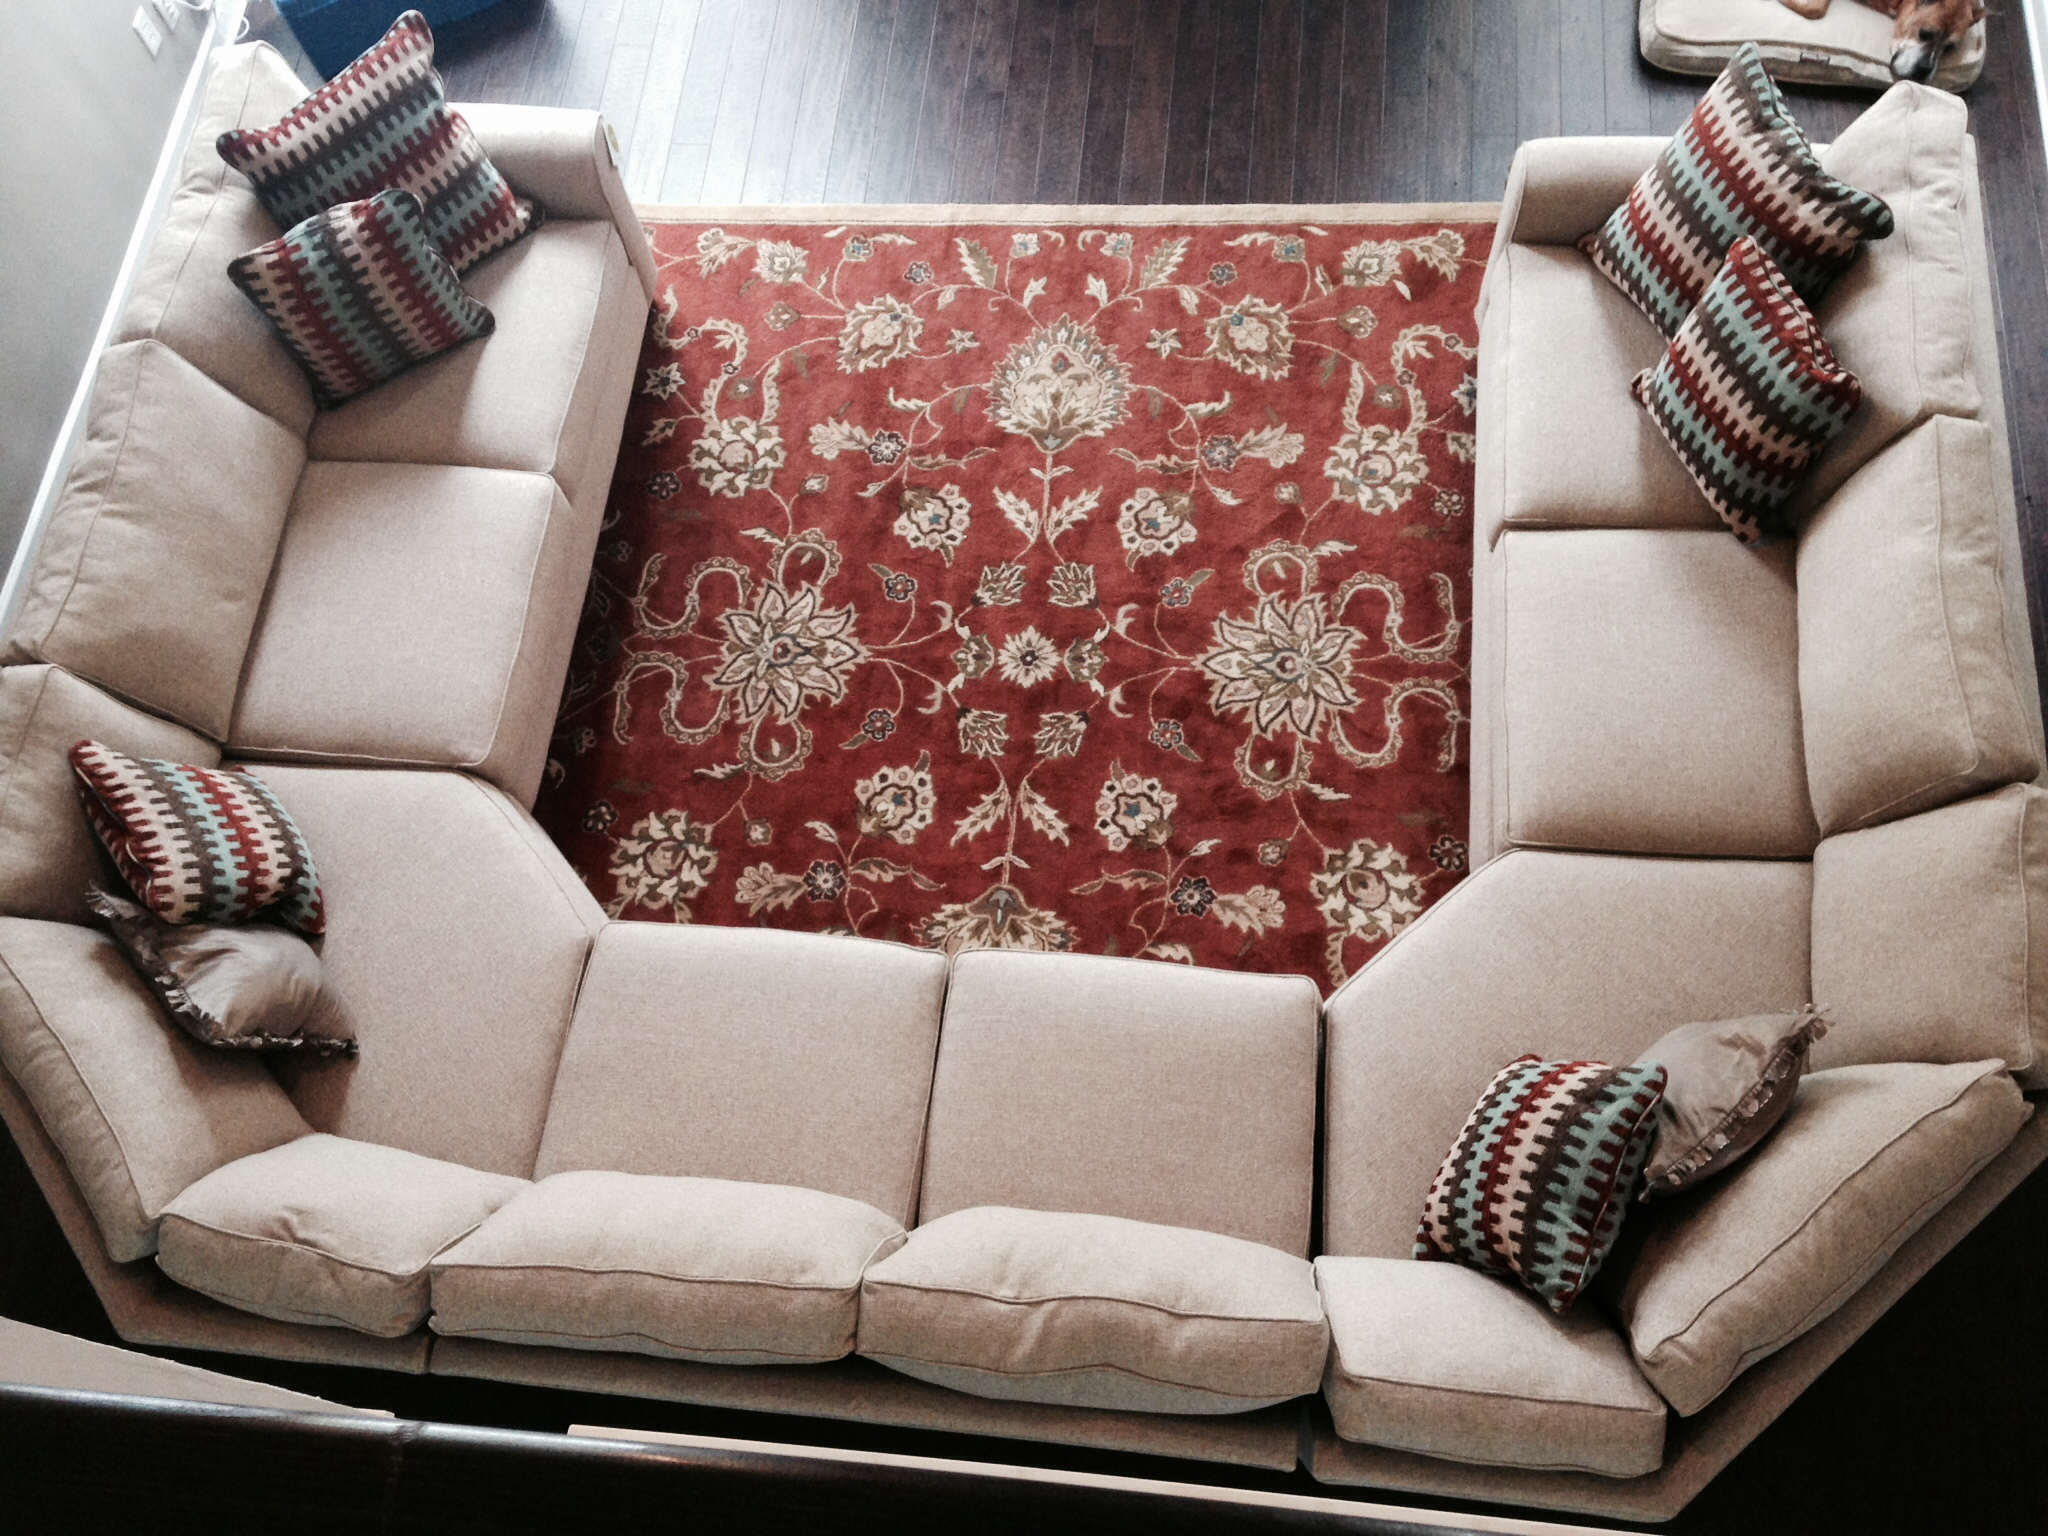 25 Best Ideas About U Shaped Couch On Pinterest Regarding C Shaped Sectional Sofa (Image 2 of 15)